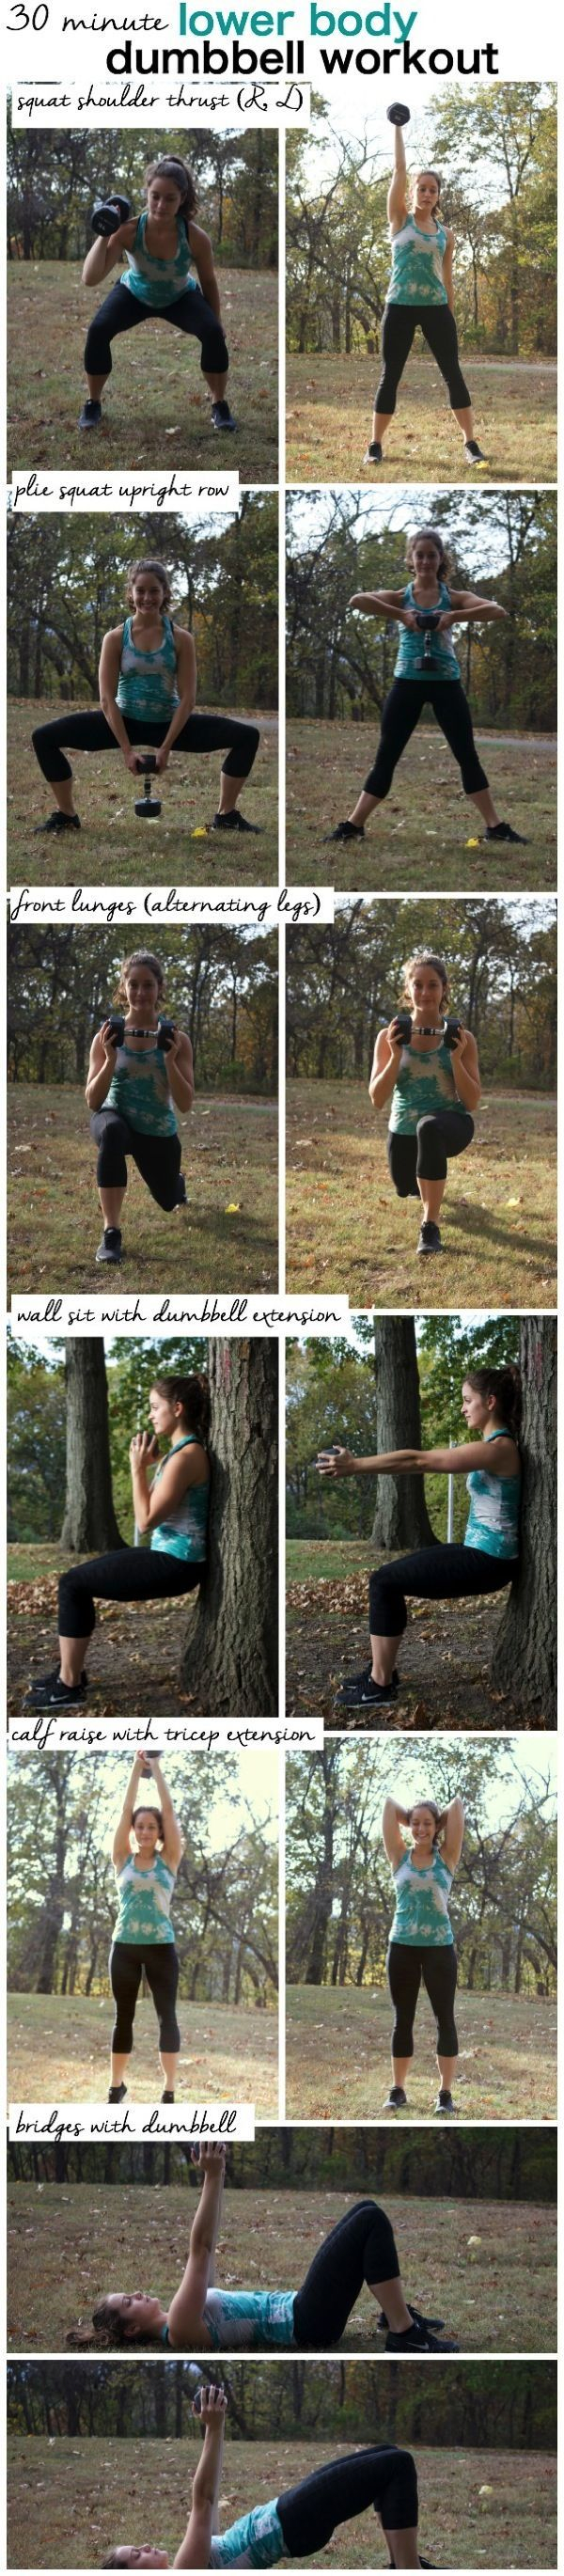 30 Minute Lower Body Dumbbell Tabata